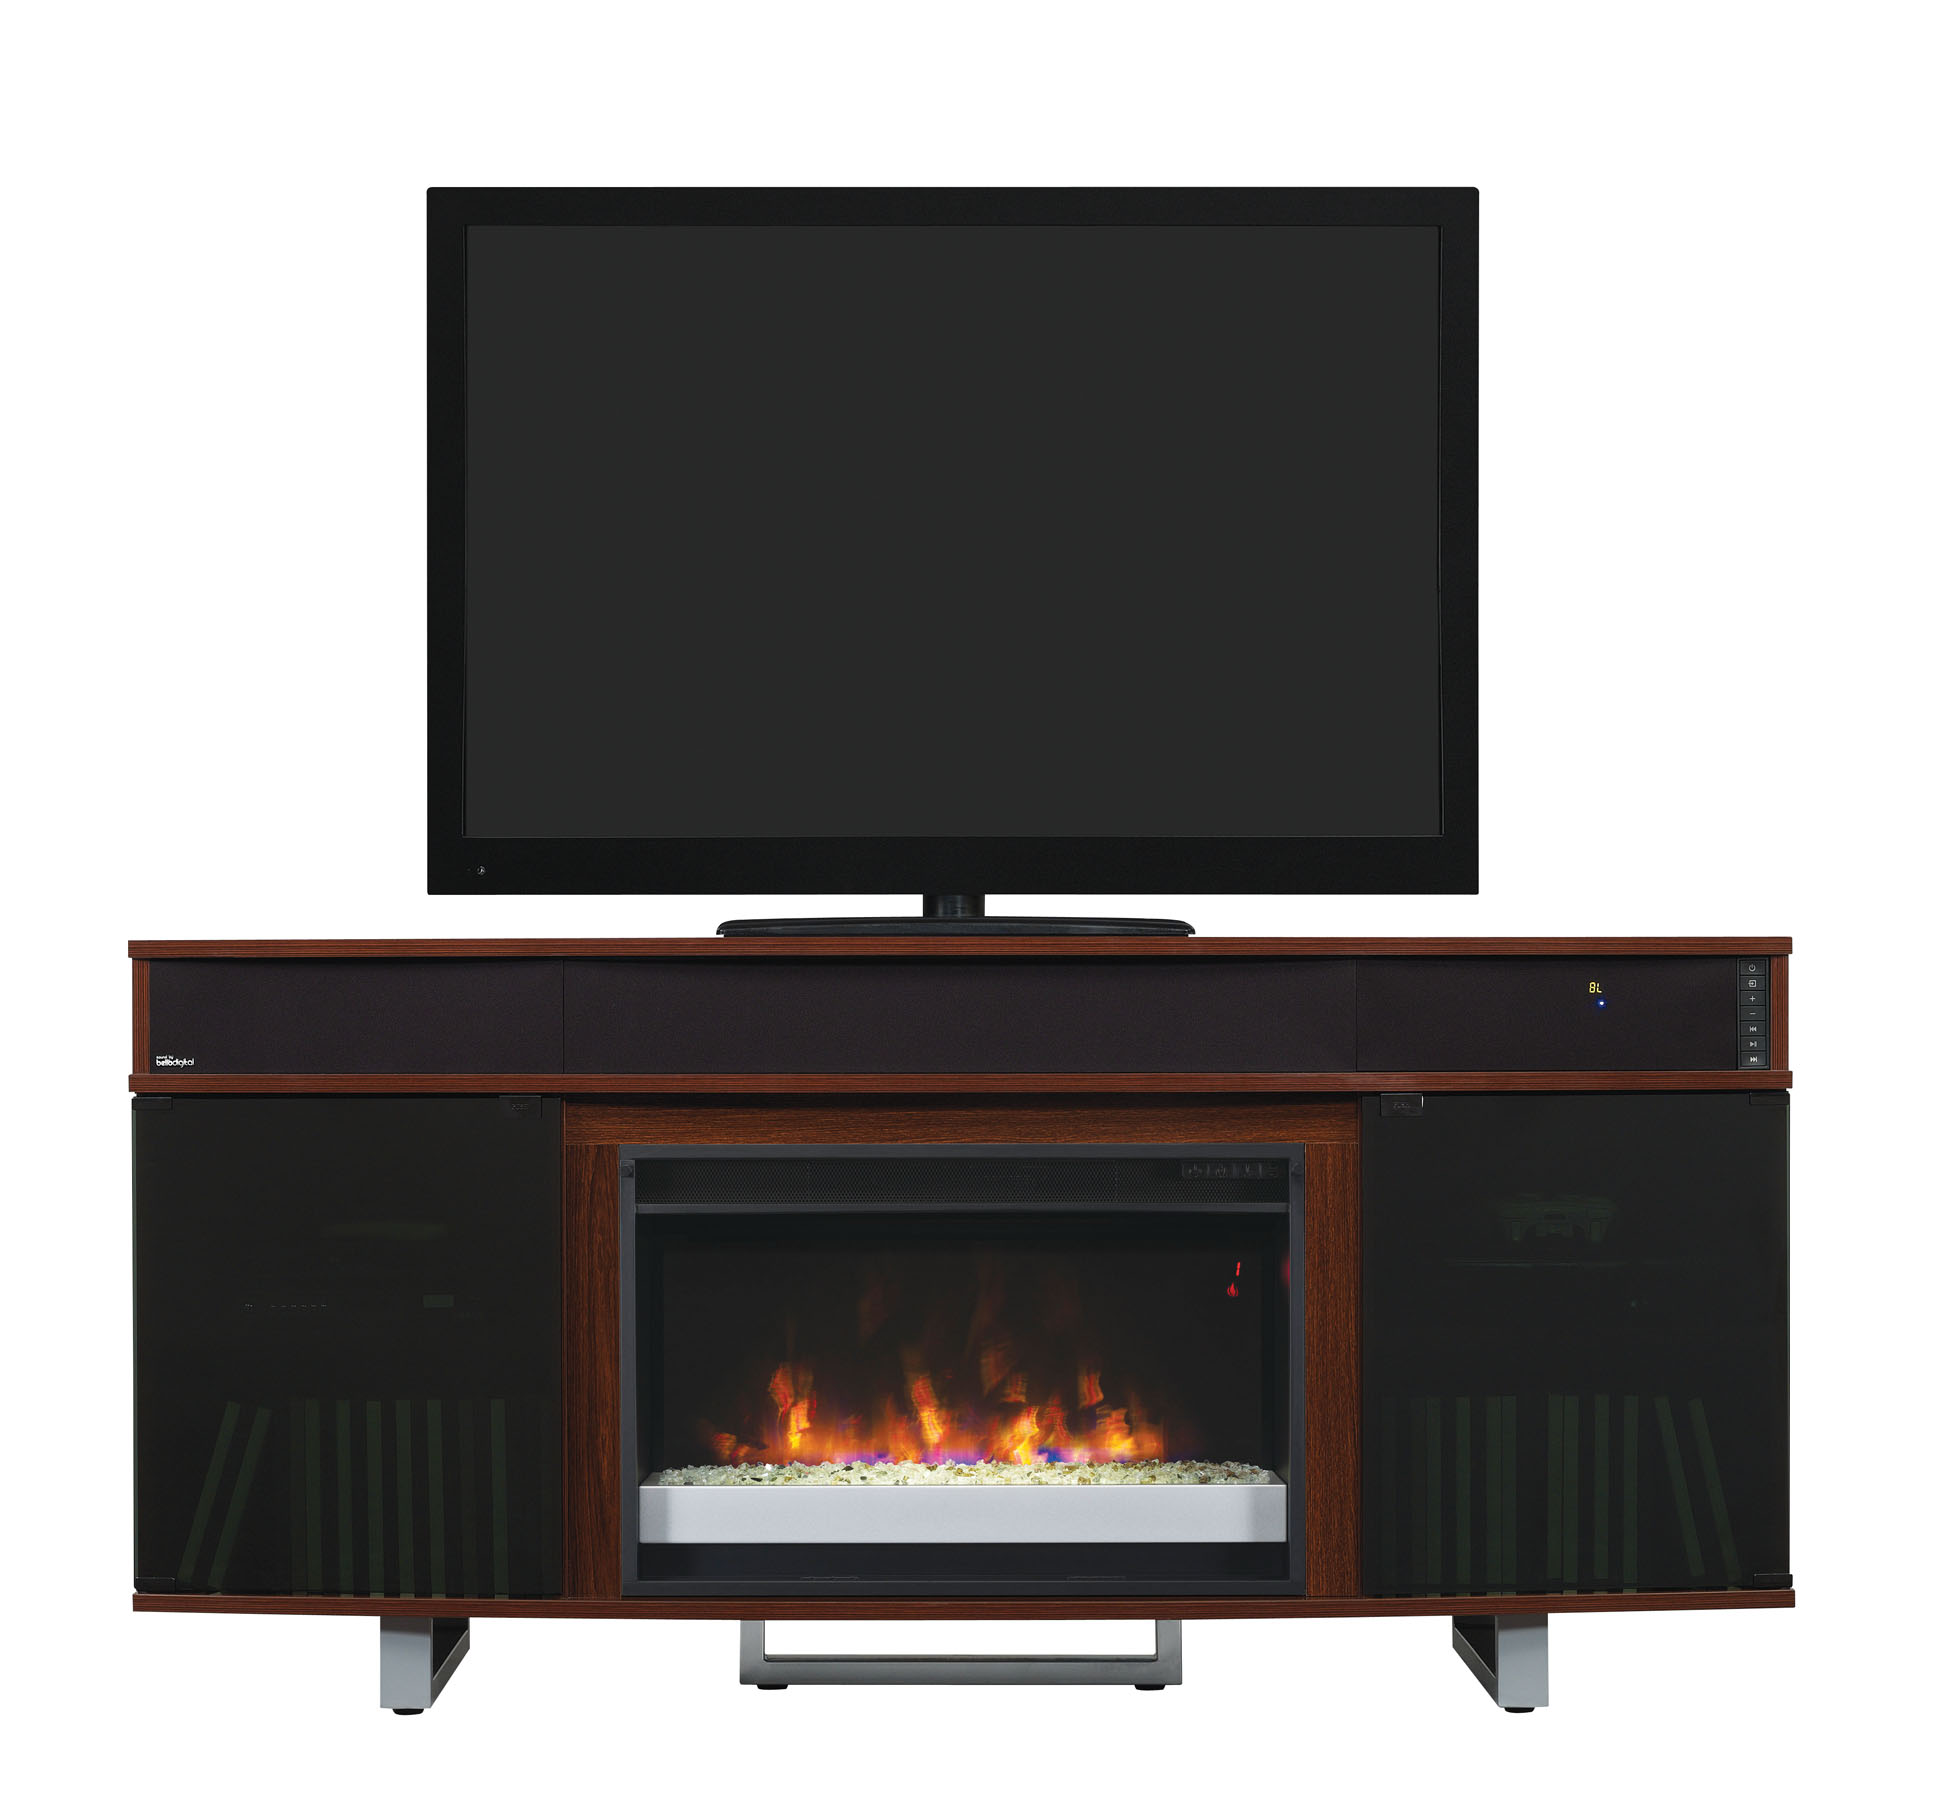 64 Quot New Enterprise Cherry Infrared Media Electric Fireplace W Bluetooth Speakers